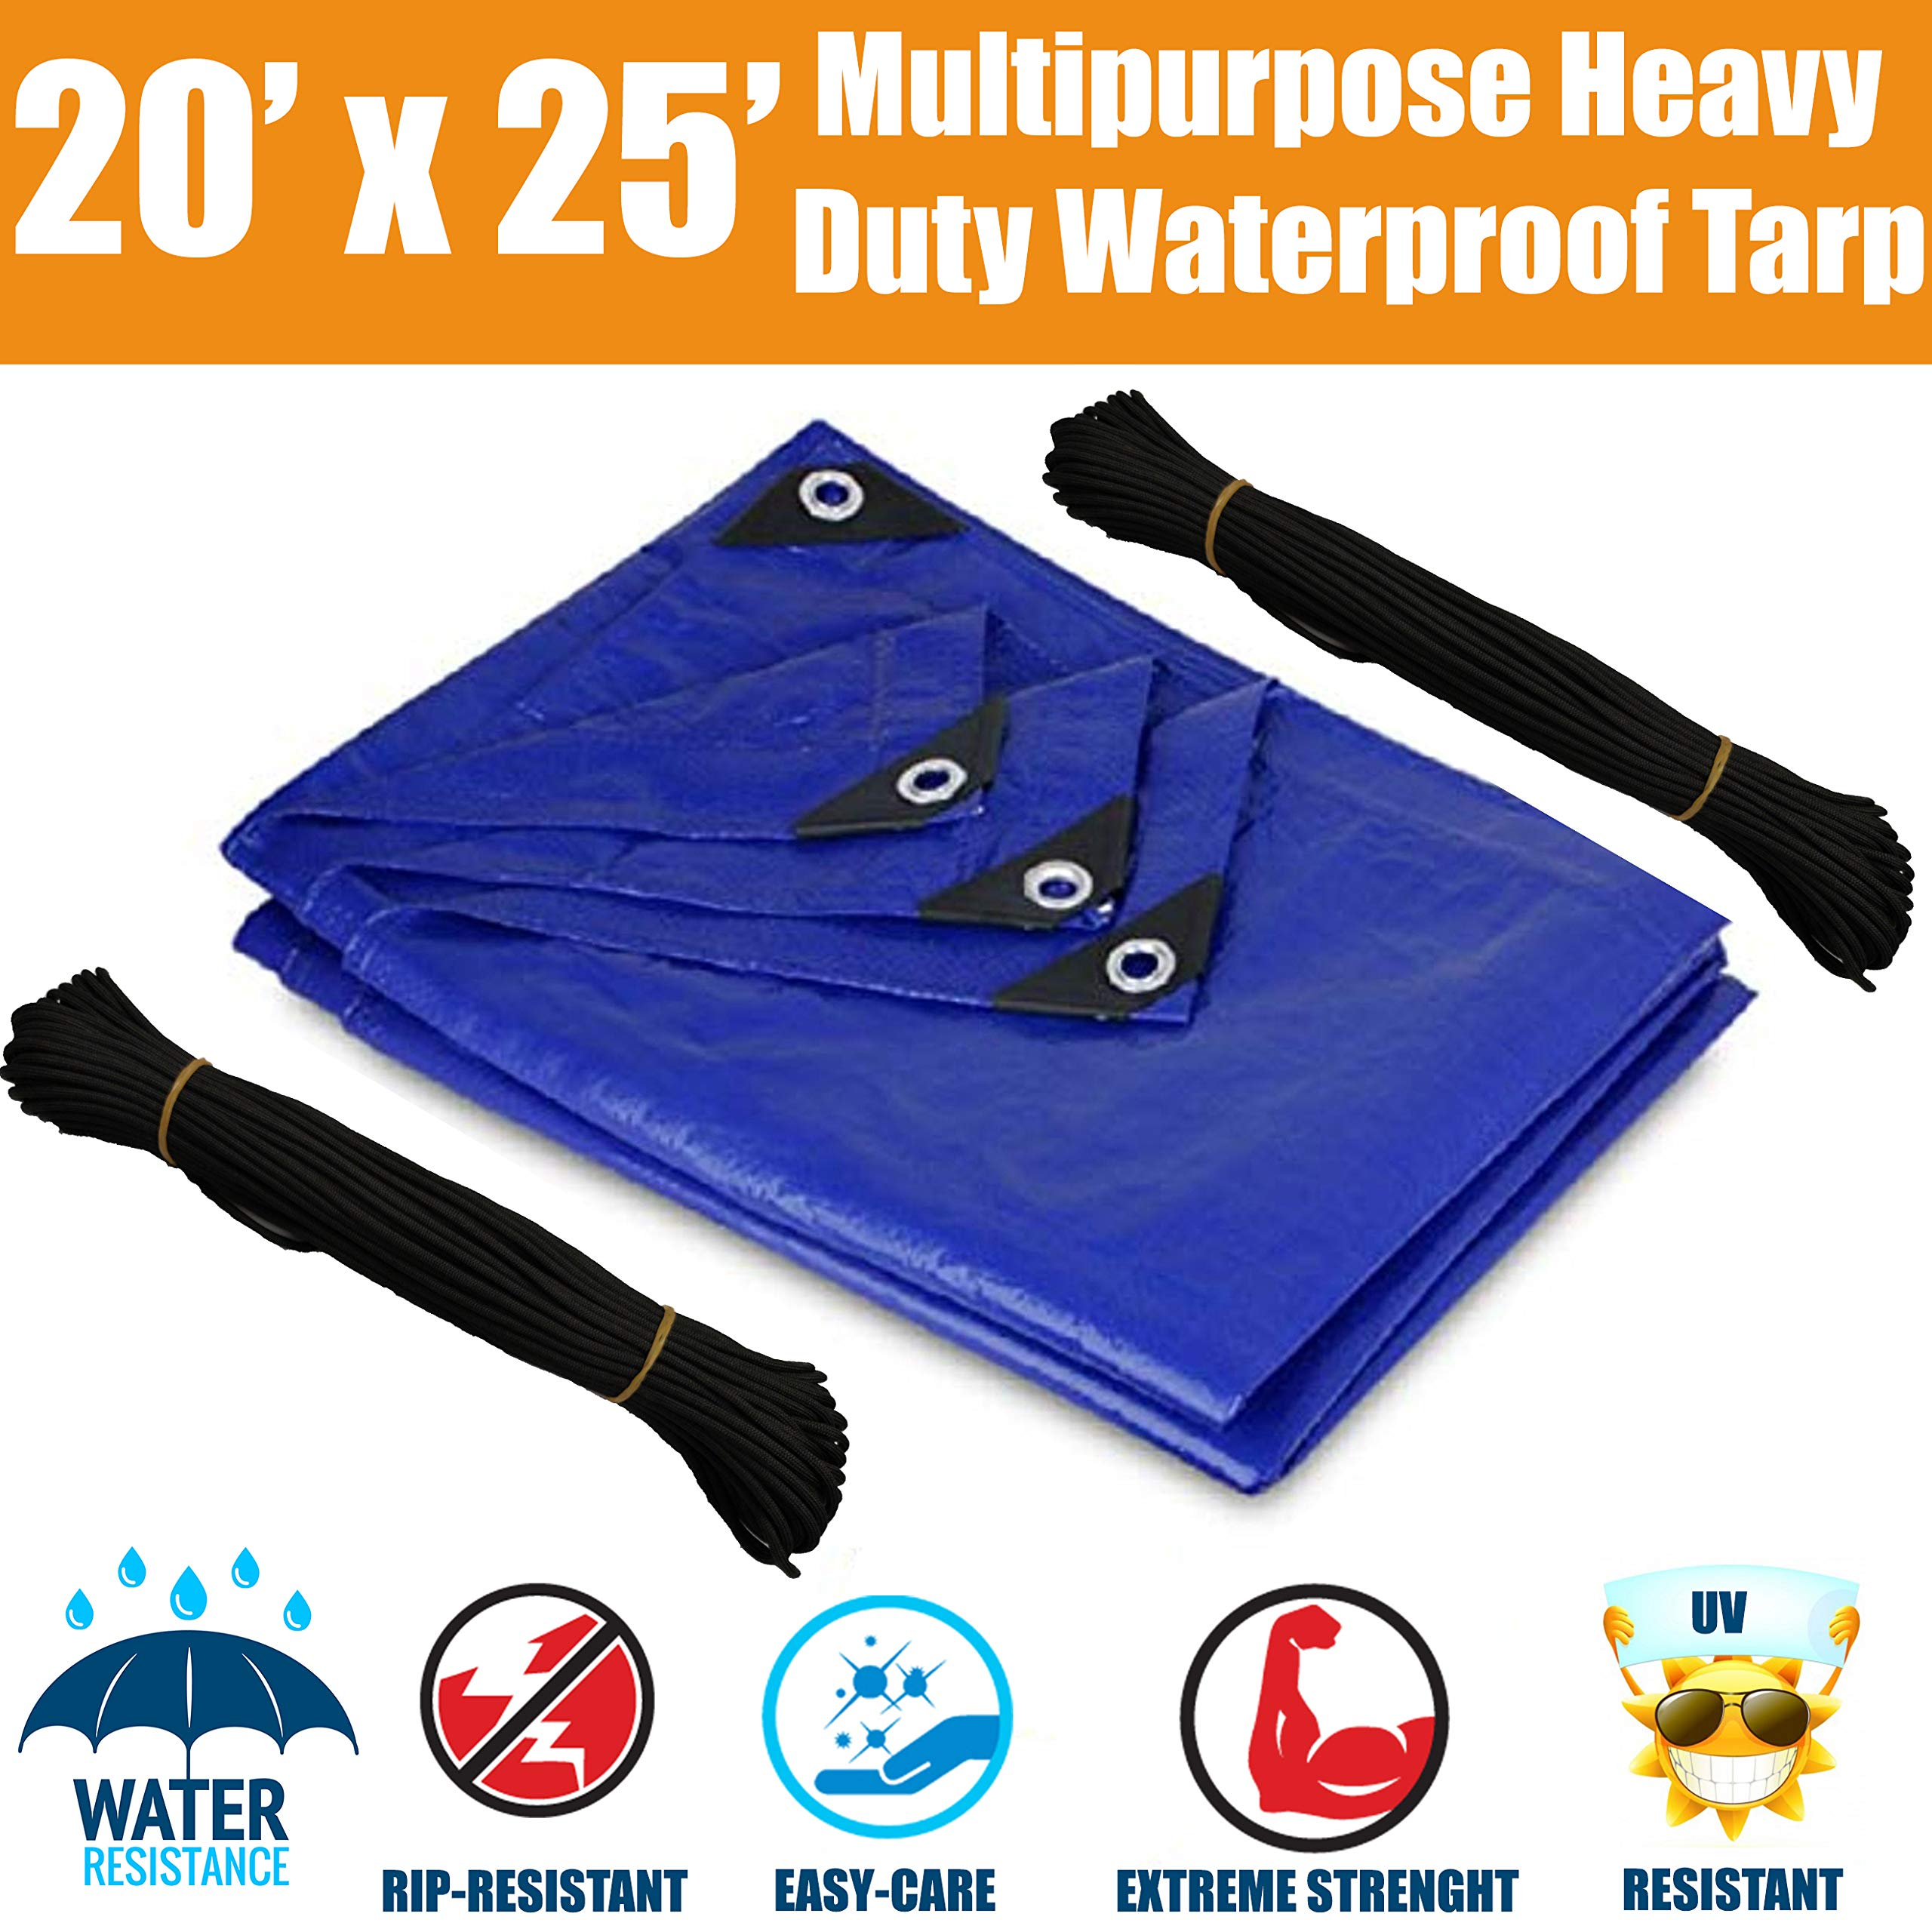 20'x25' Heavy Duty Waterproof Tarps - Multi-Purpose Blue Tarpaulin with Grommets, Reinforced Edges and Nylon Paracord for Outdoor Rain Shelter, Ground Cover, Boat, RV or Pool Cover